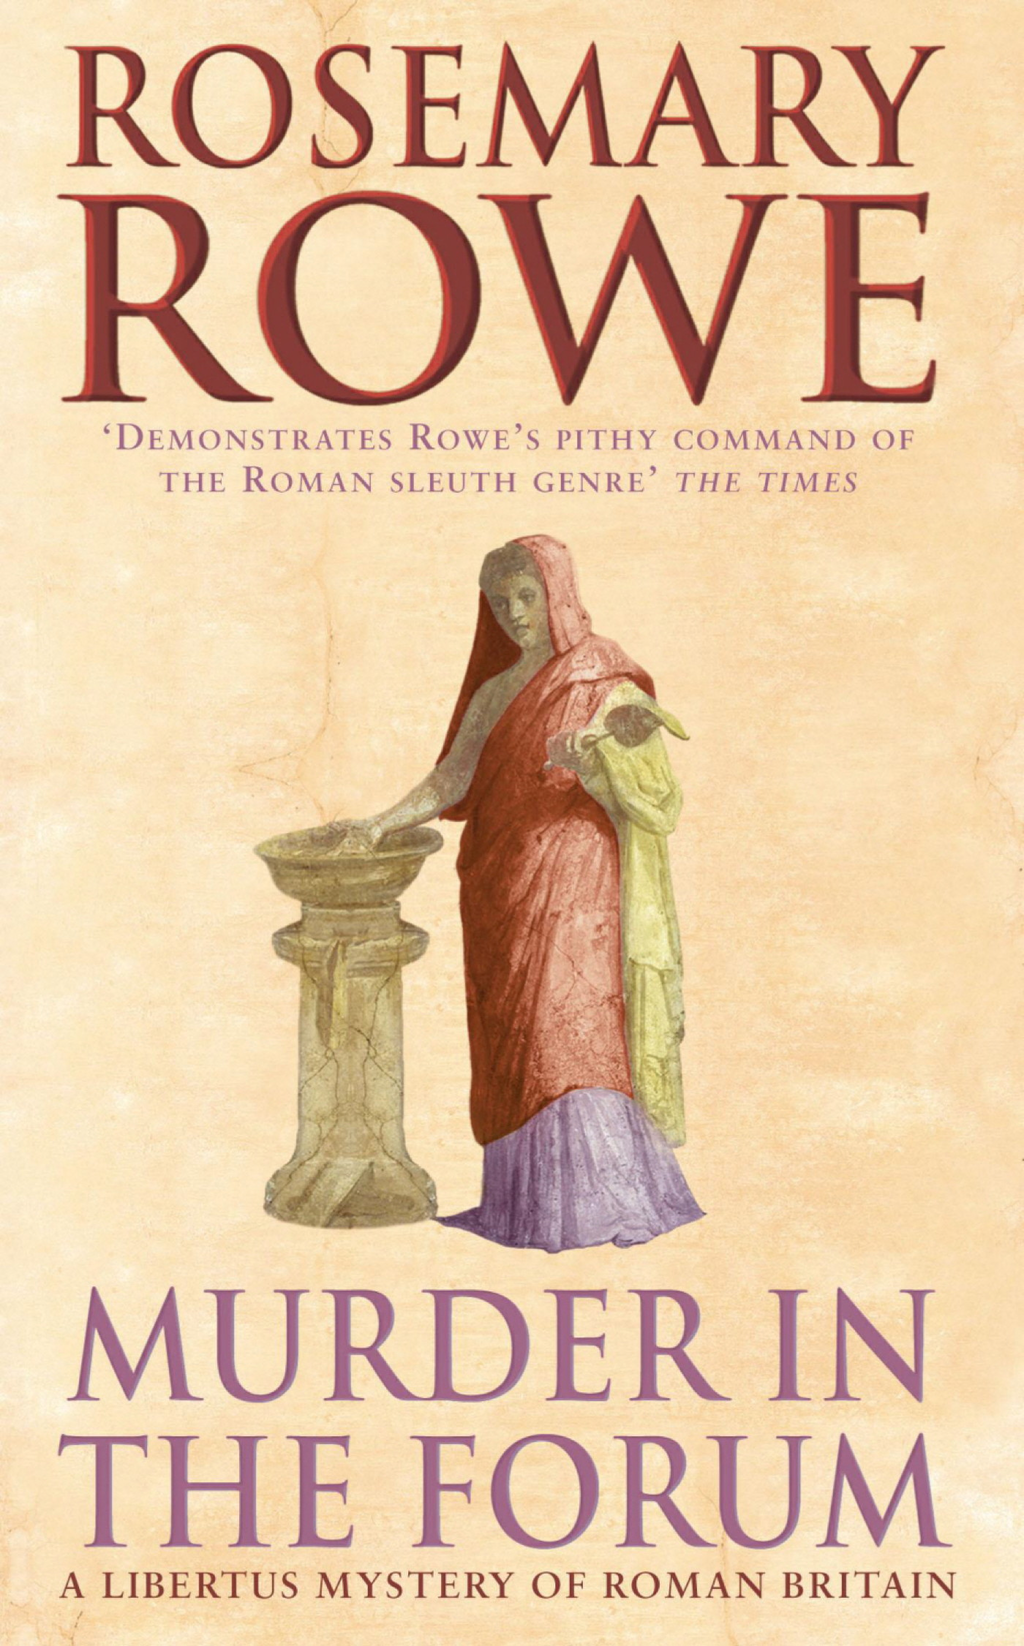 Murder in the Forum